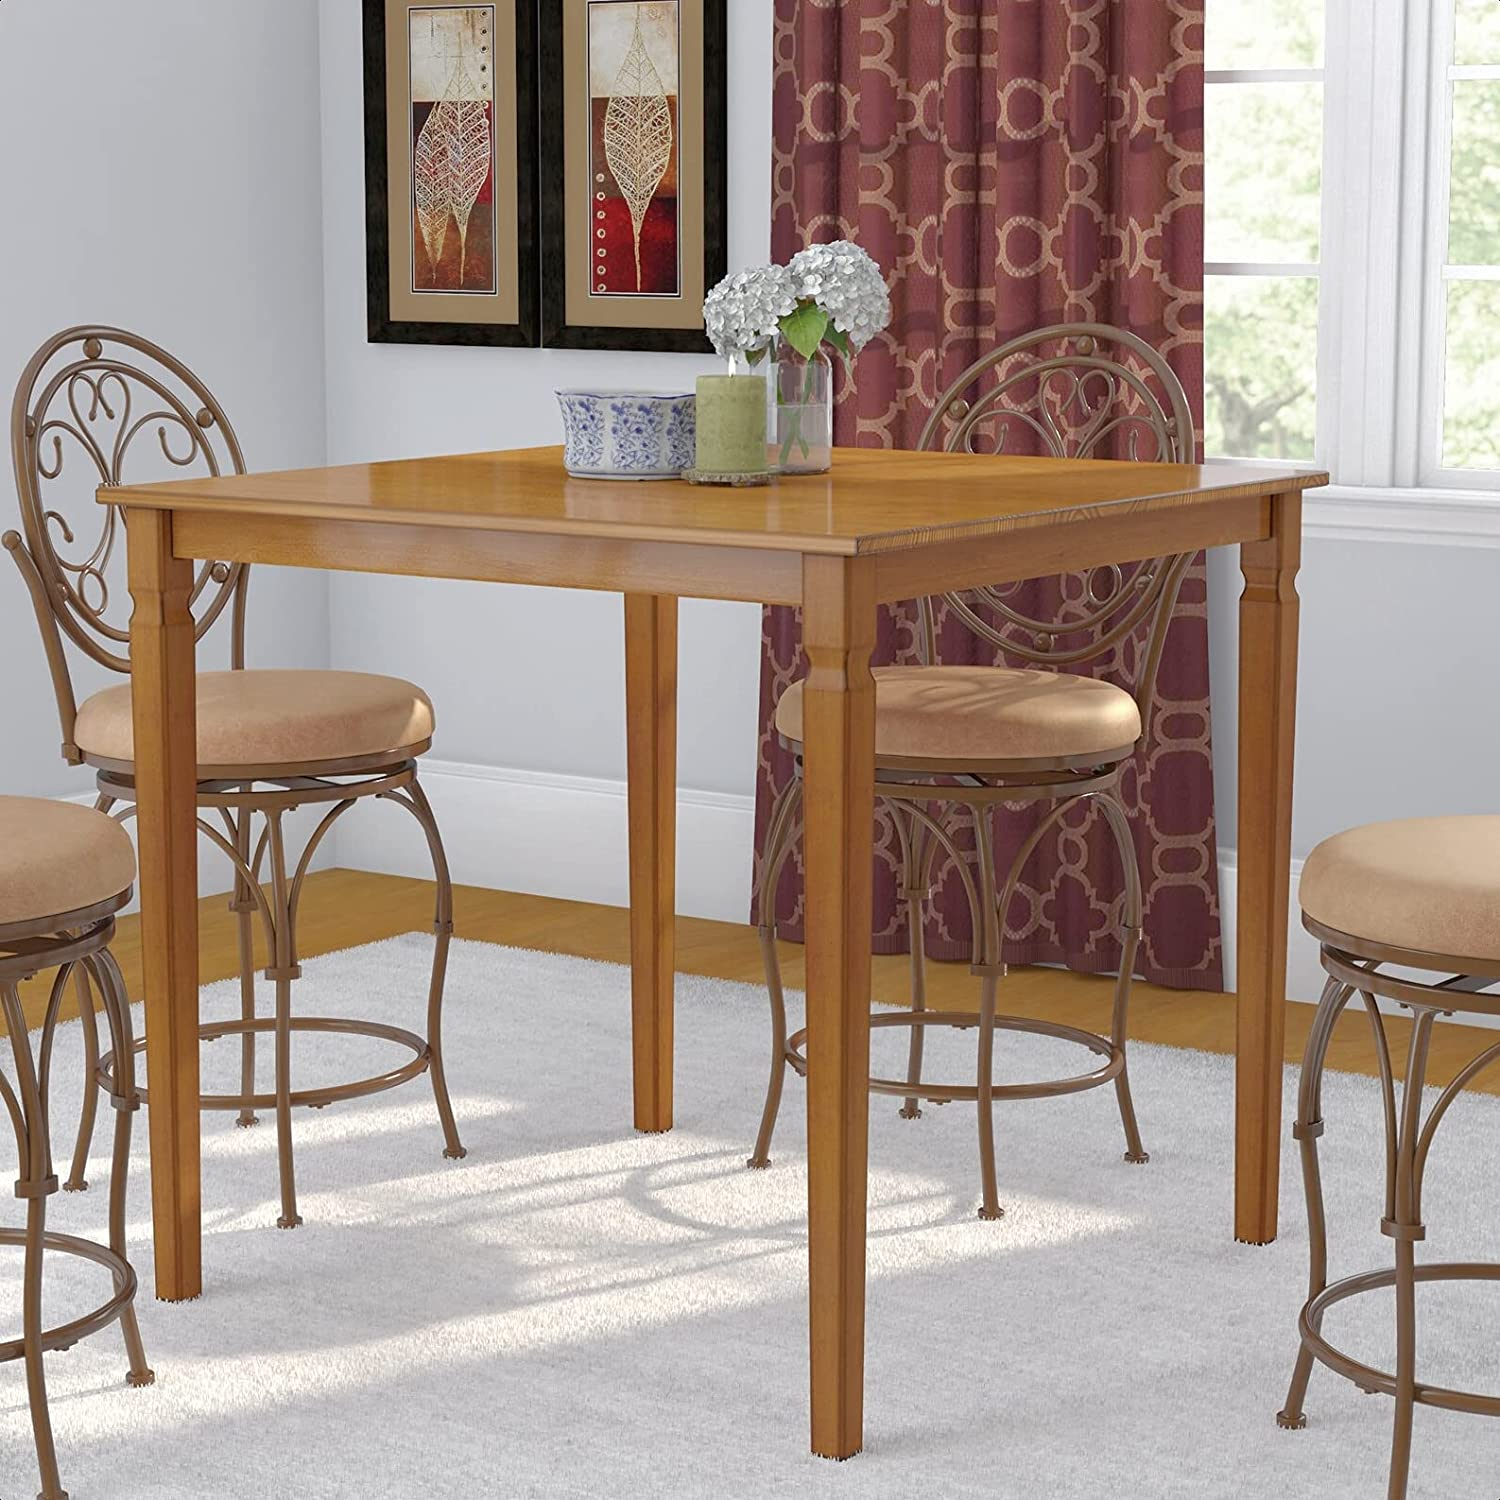 Trenton Counter Long Manufacturer regenerated product Beach Mall Height Solid Wood 39'''' Dining Table Overall: